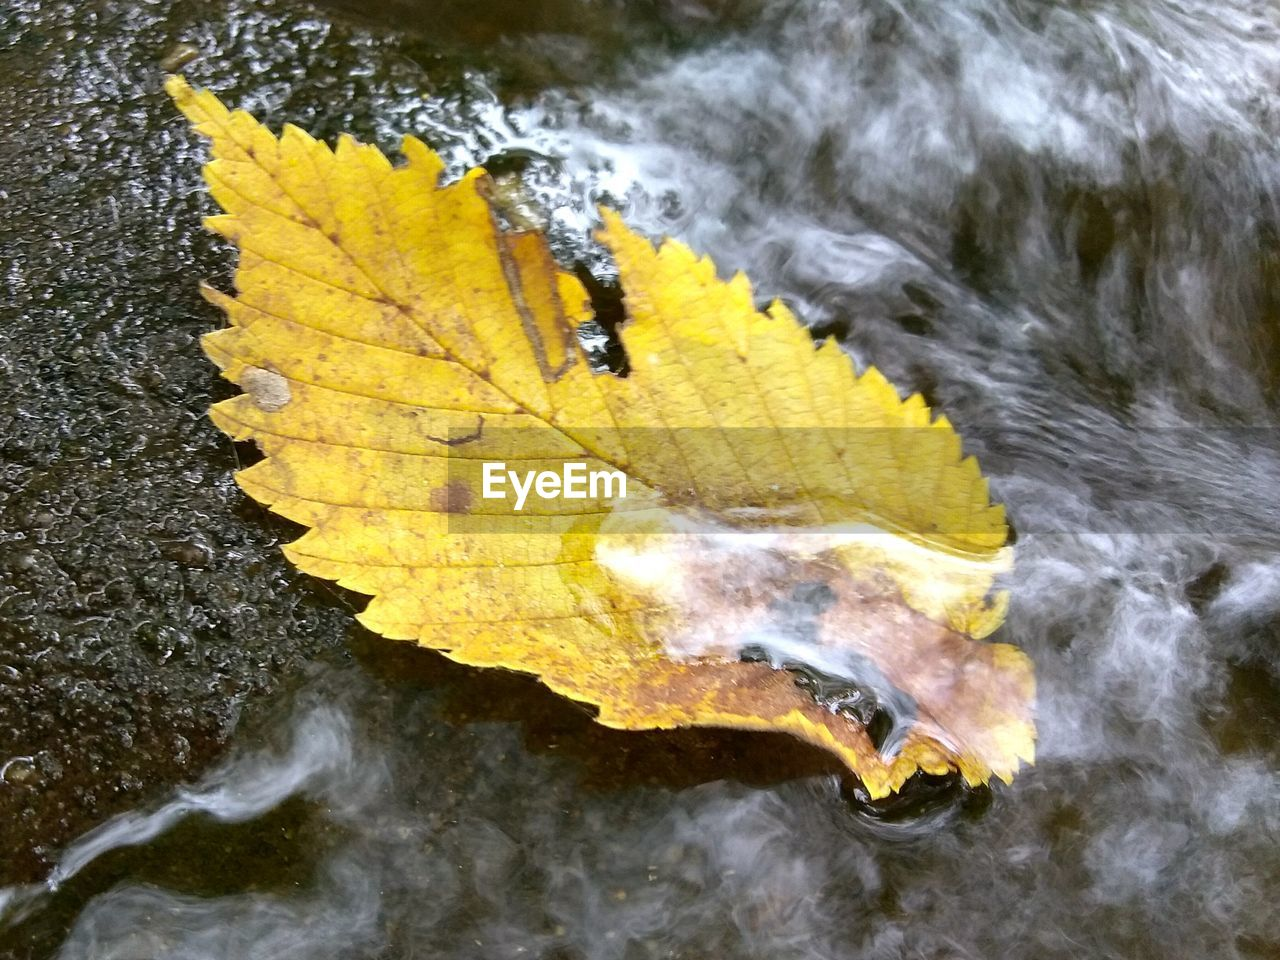 leaf, autumn, change, nature, yellow, water, beauty in nature, outdoors, day, no people, scenics, tree, maple, purity, landscape, close-up, fragility